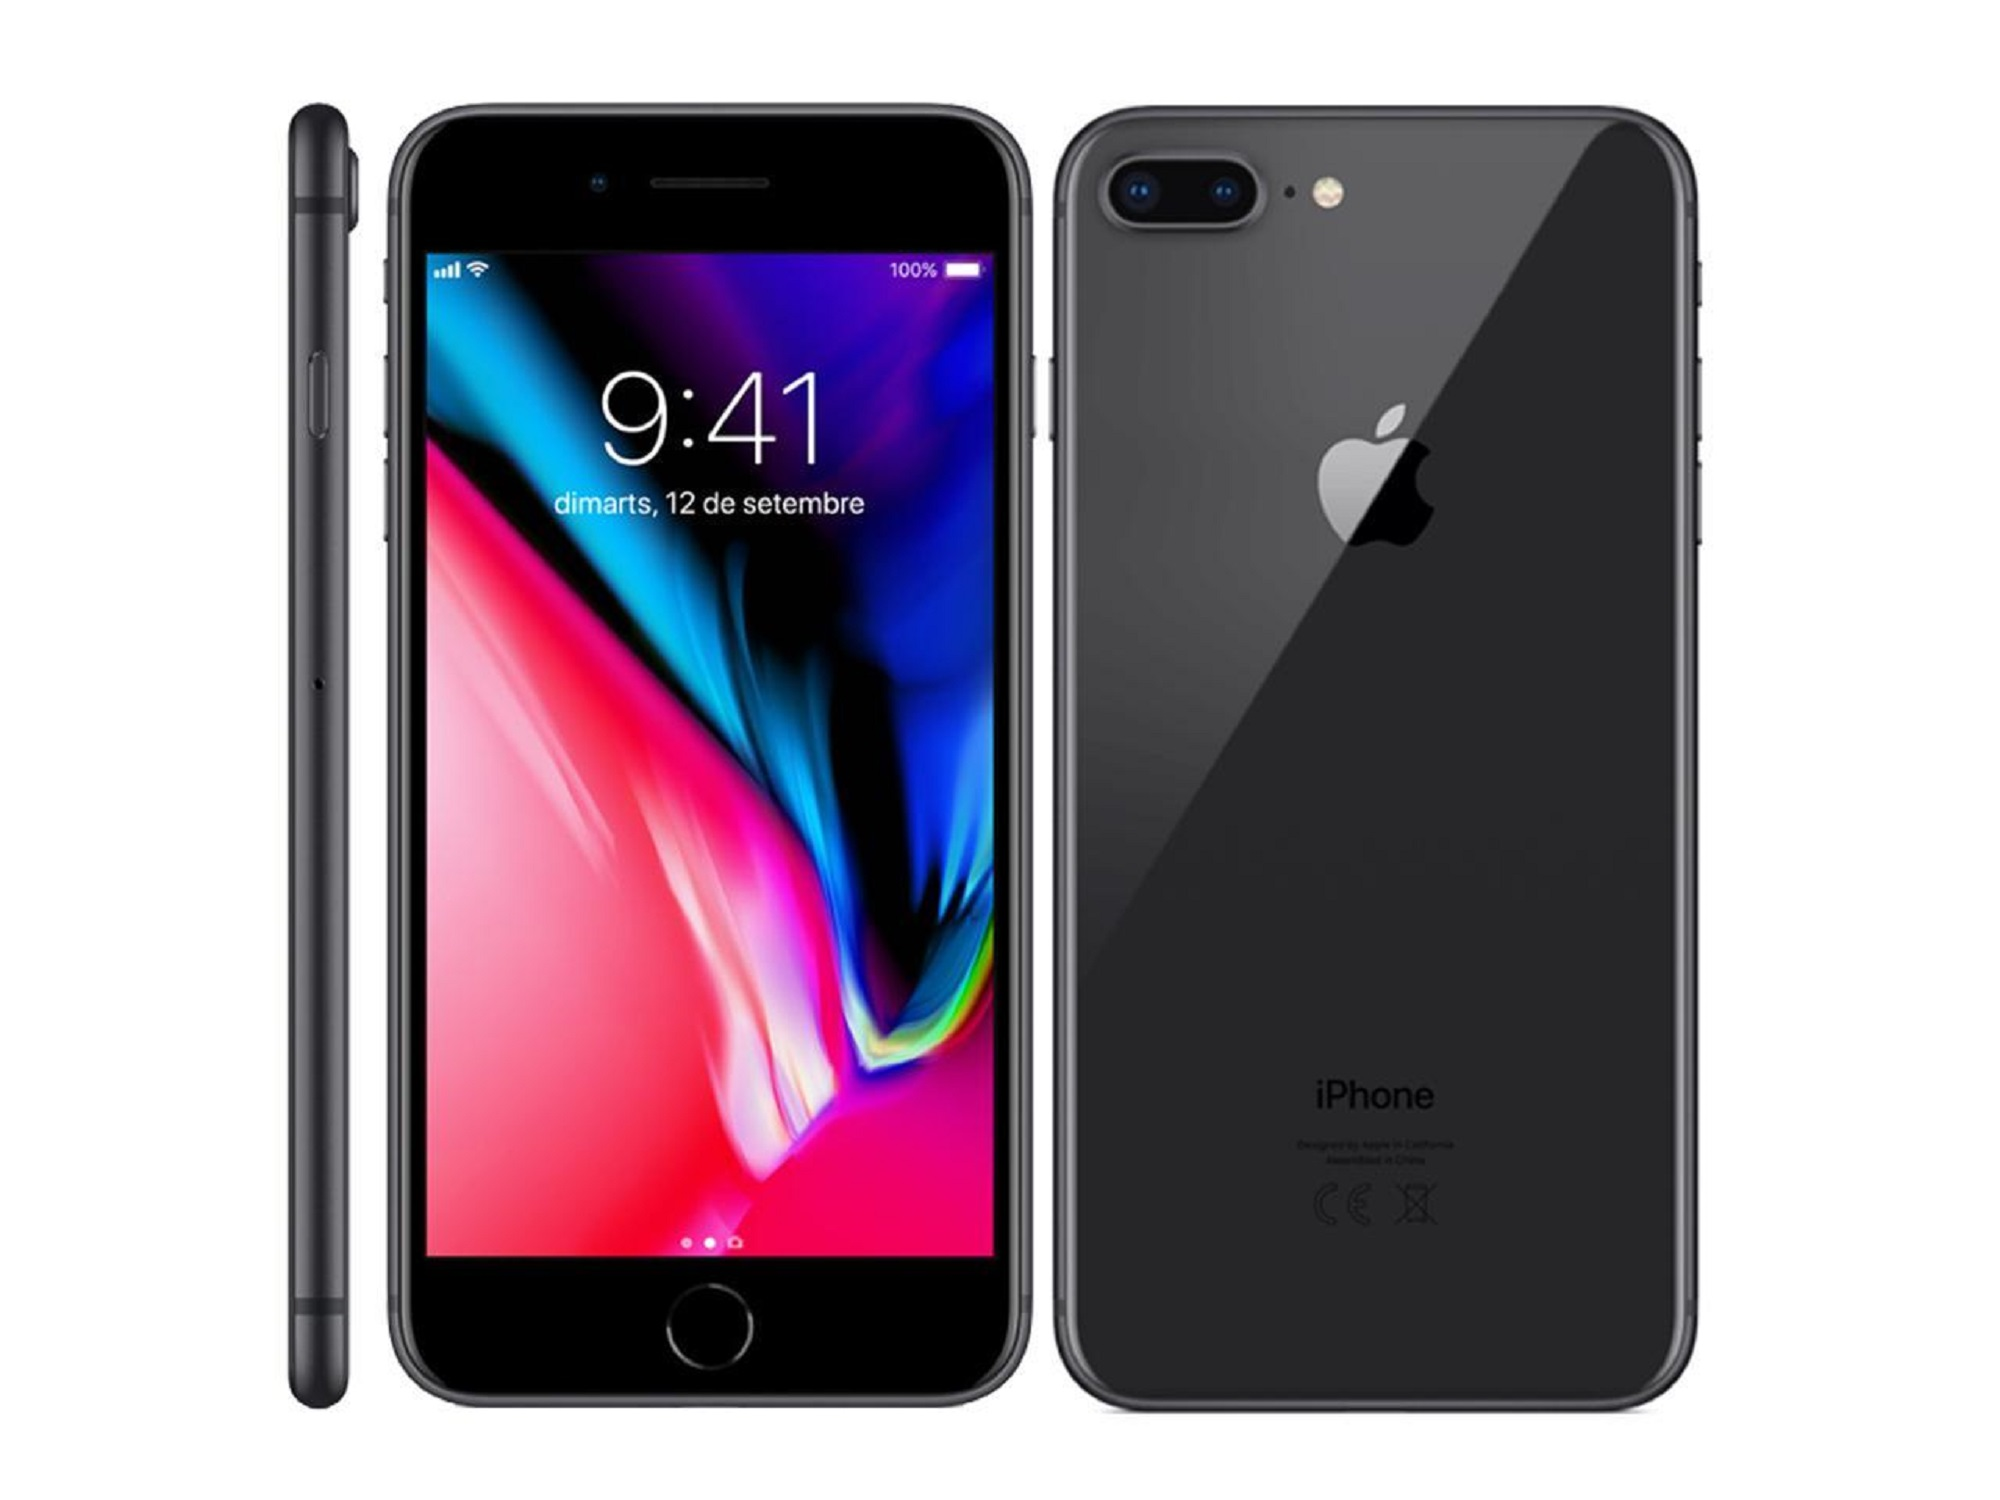 thumbnail 9 - Apple iPhone 8 Plus 64GB Factory Unlocked Smartphone